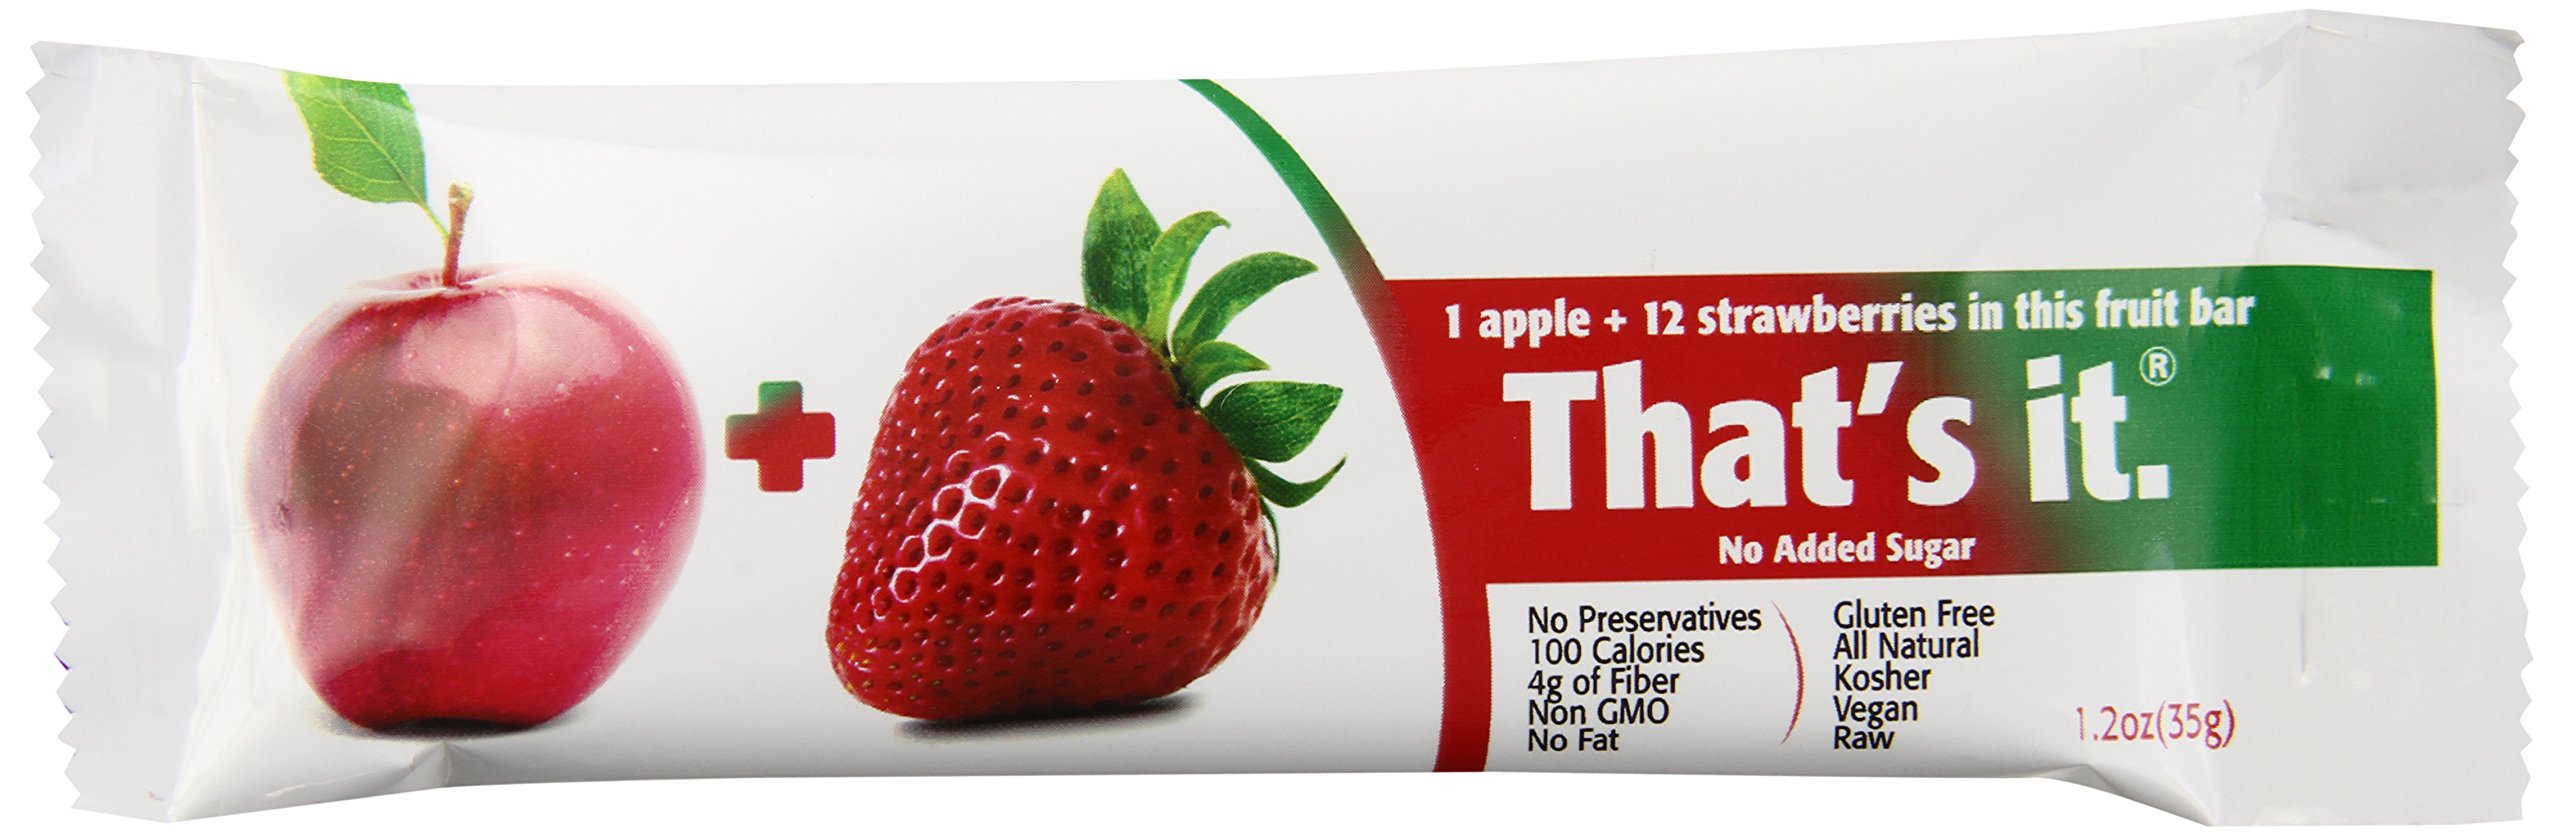 Apple and Strawberry That's It. Fruit Bars - 100% Natural Great Tasting Healthy Real Fruit Bar - Vegan Gluten Free Paleo Kosher Non GMO 100 Calories No Preservatives and No Added Sugar - Pack of 12